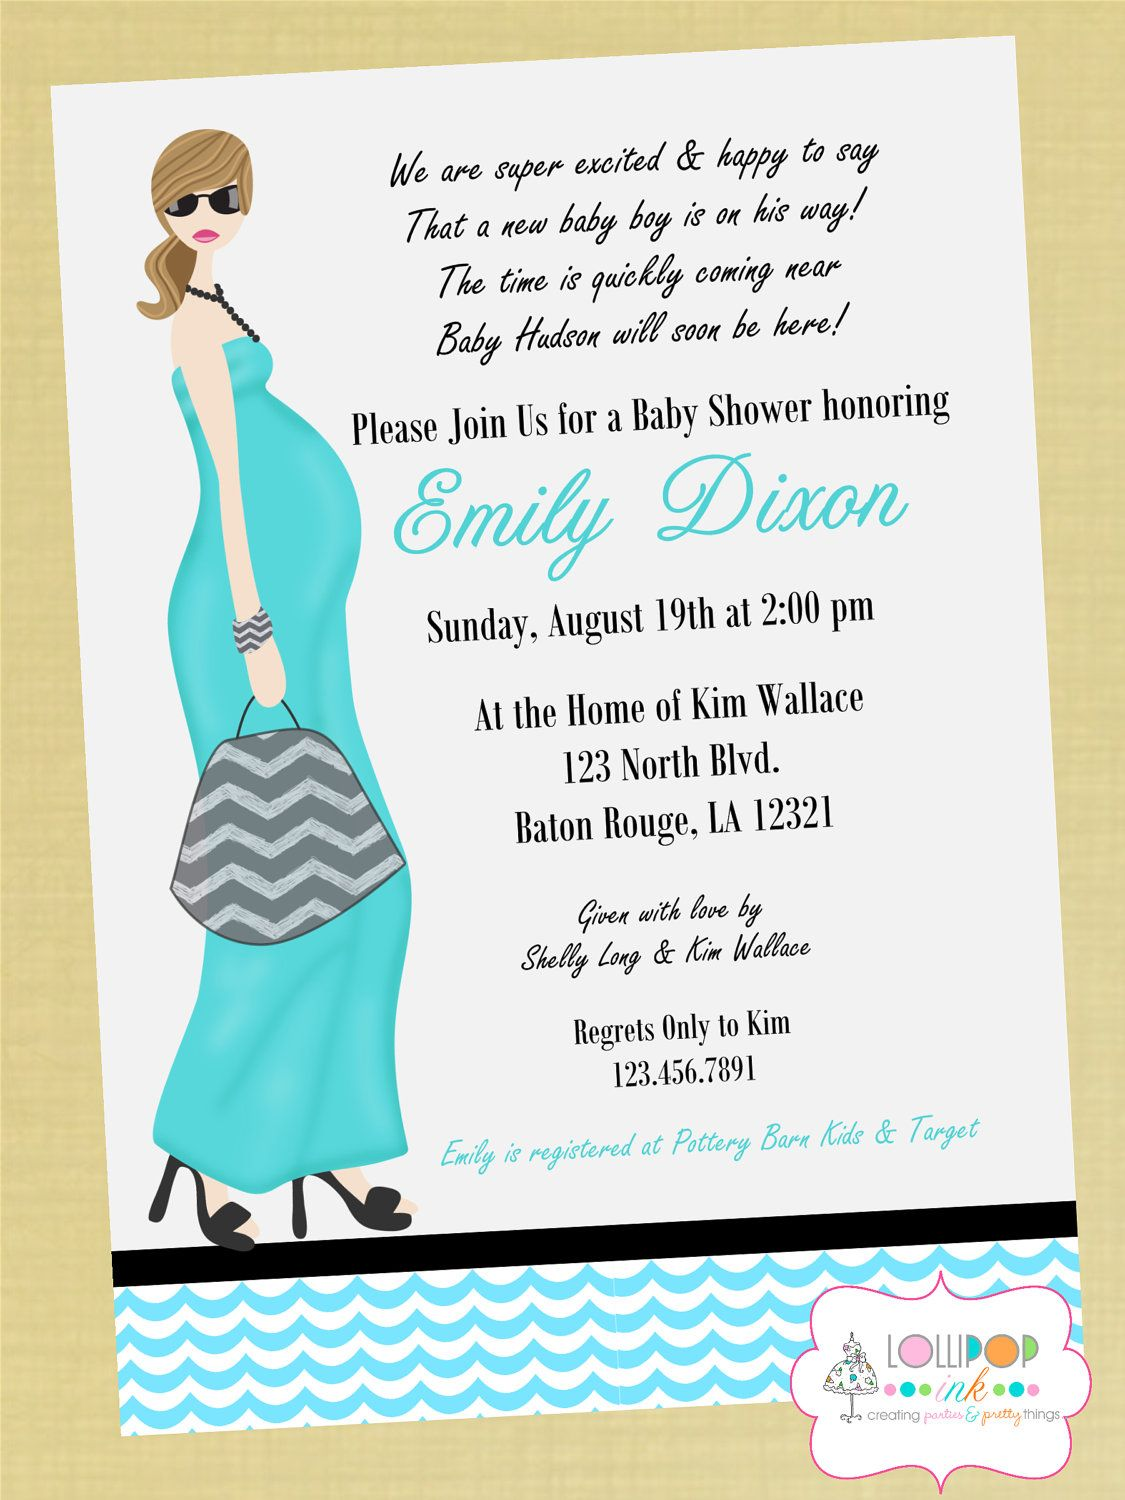 The Baby Shower Invitation Wording Templates More http://www ...